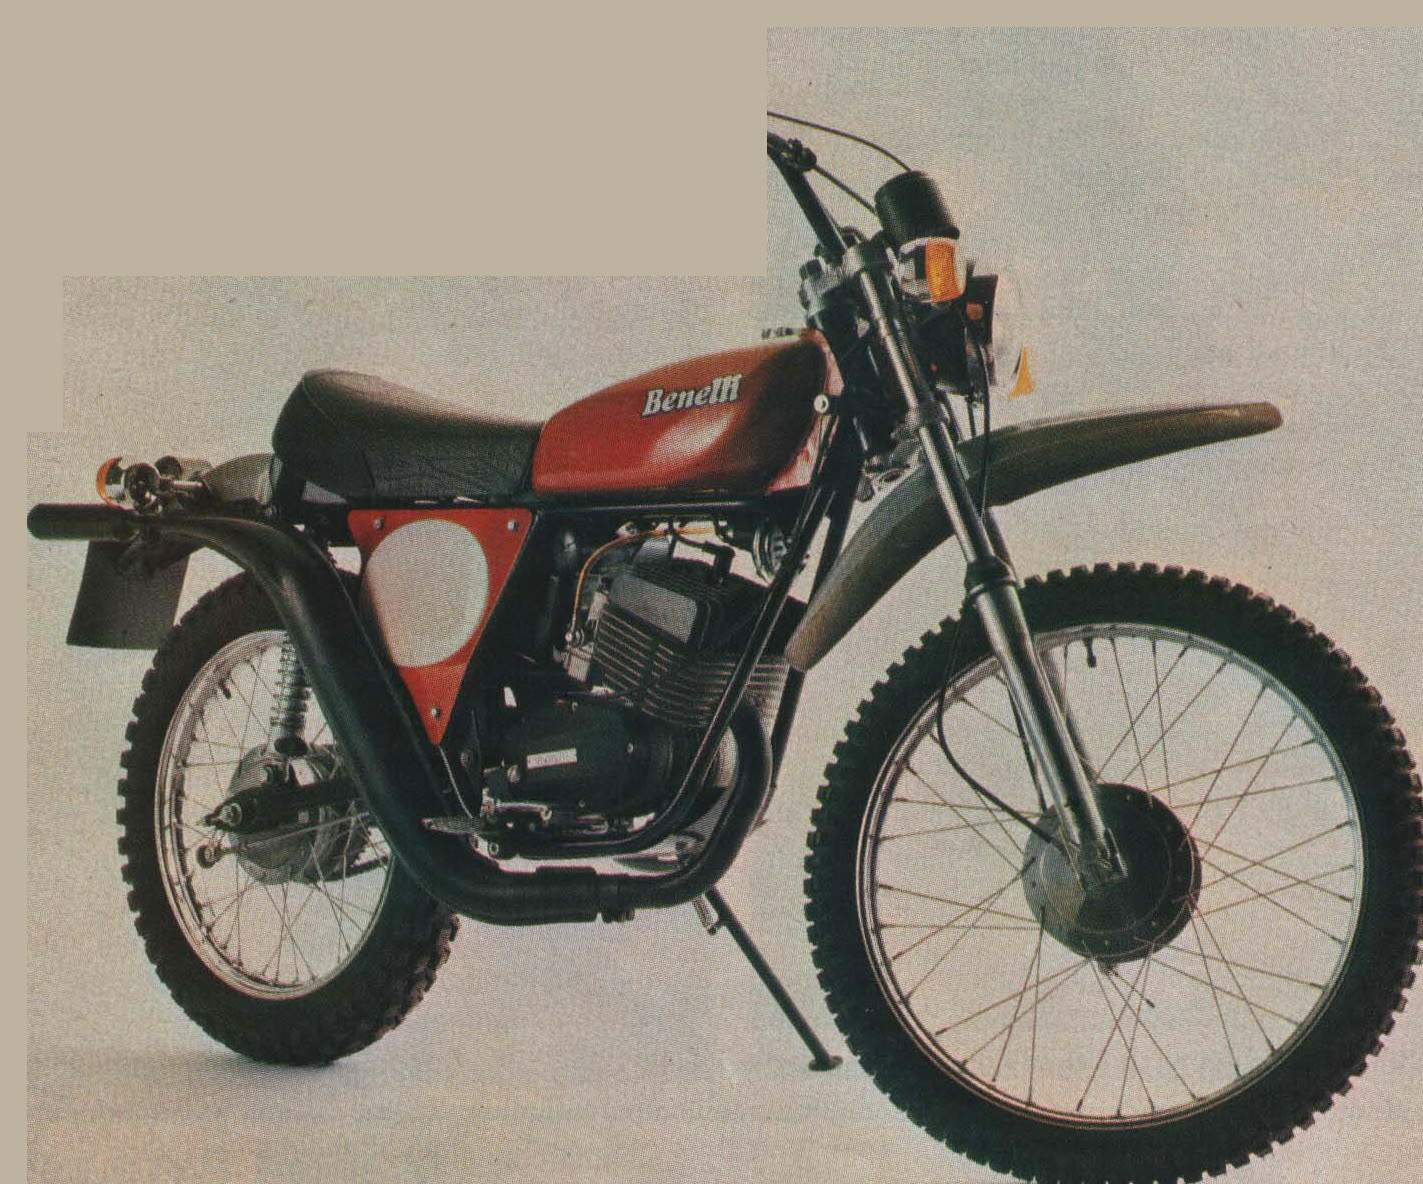 benelli 125 enduro 1979 1980 autoevolution. Black Bedroom Furniture Sets. Home Design Ideas